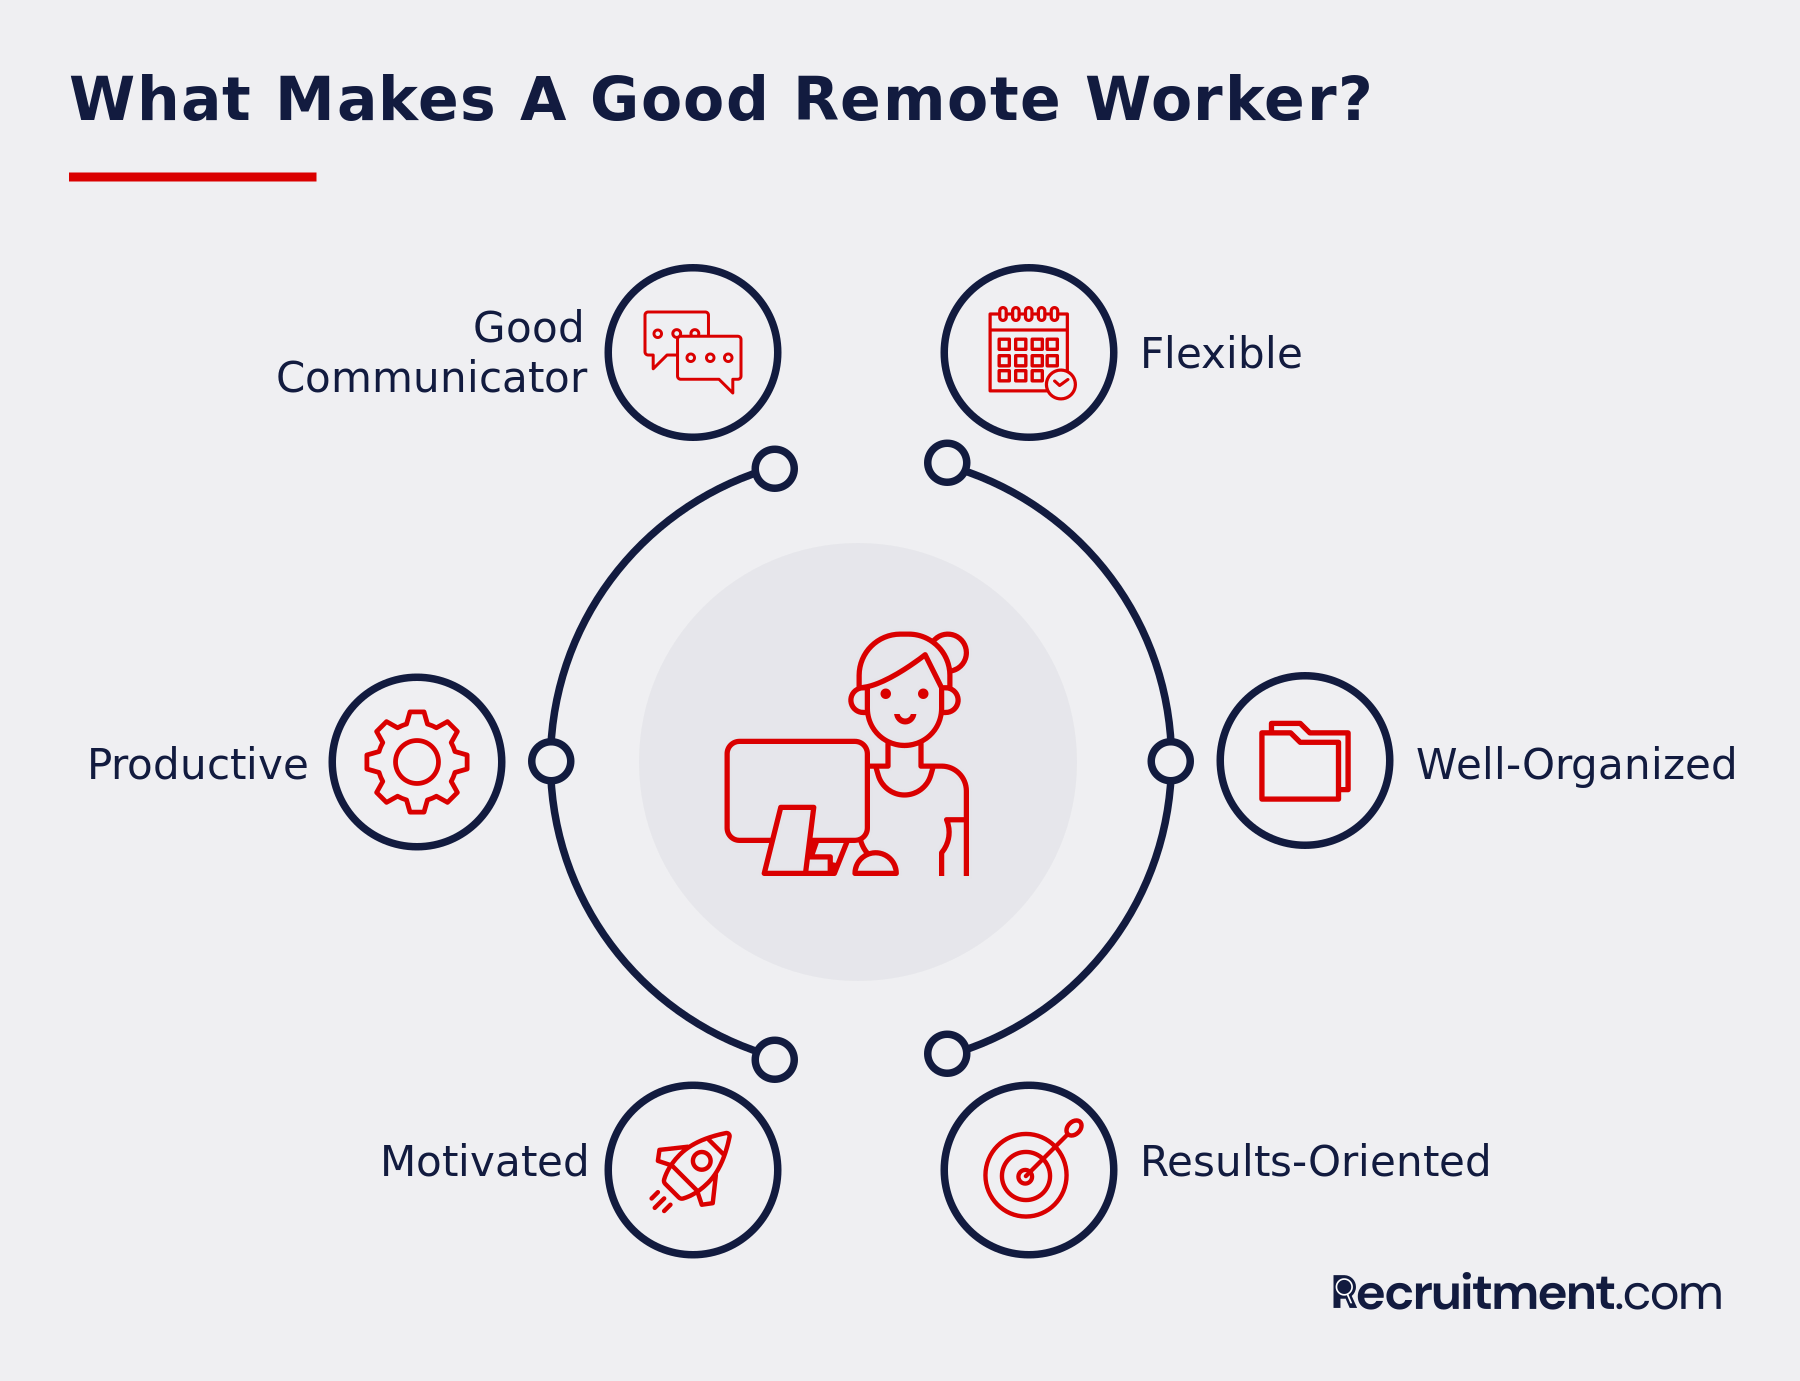 What makes a good remote worker